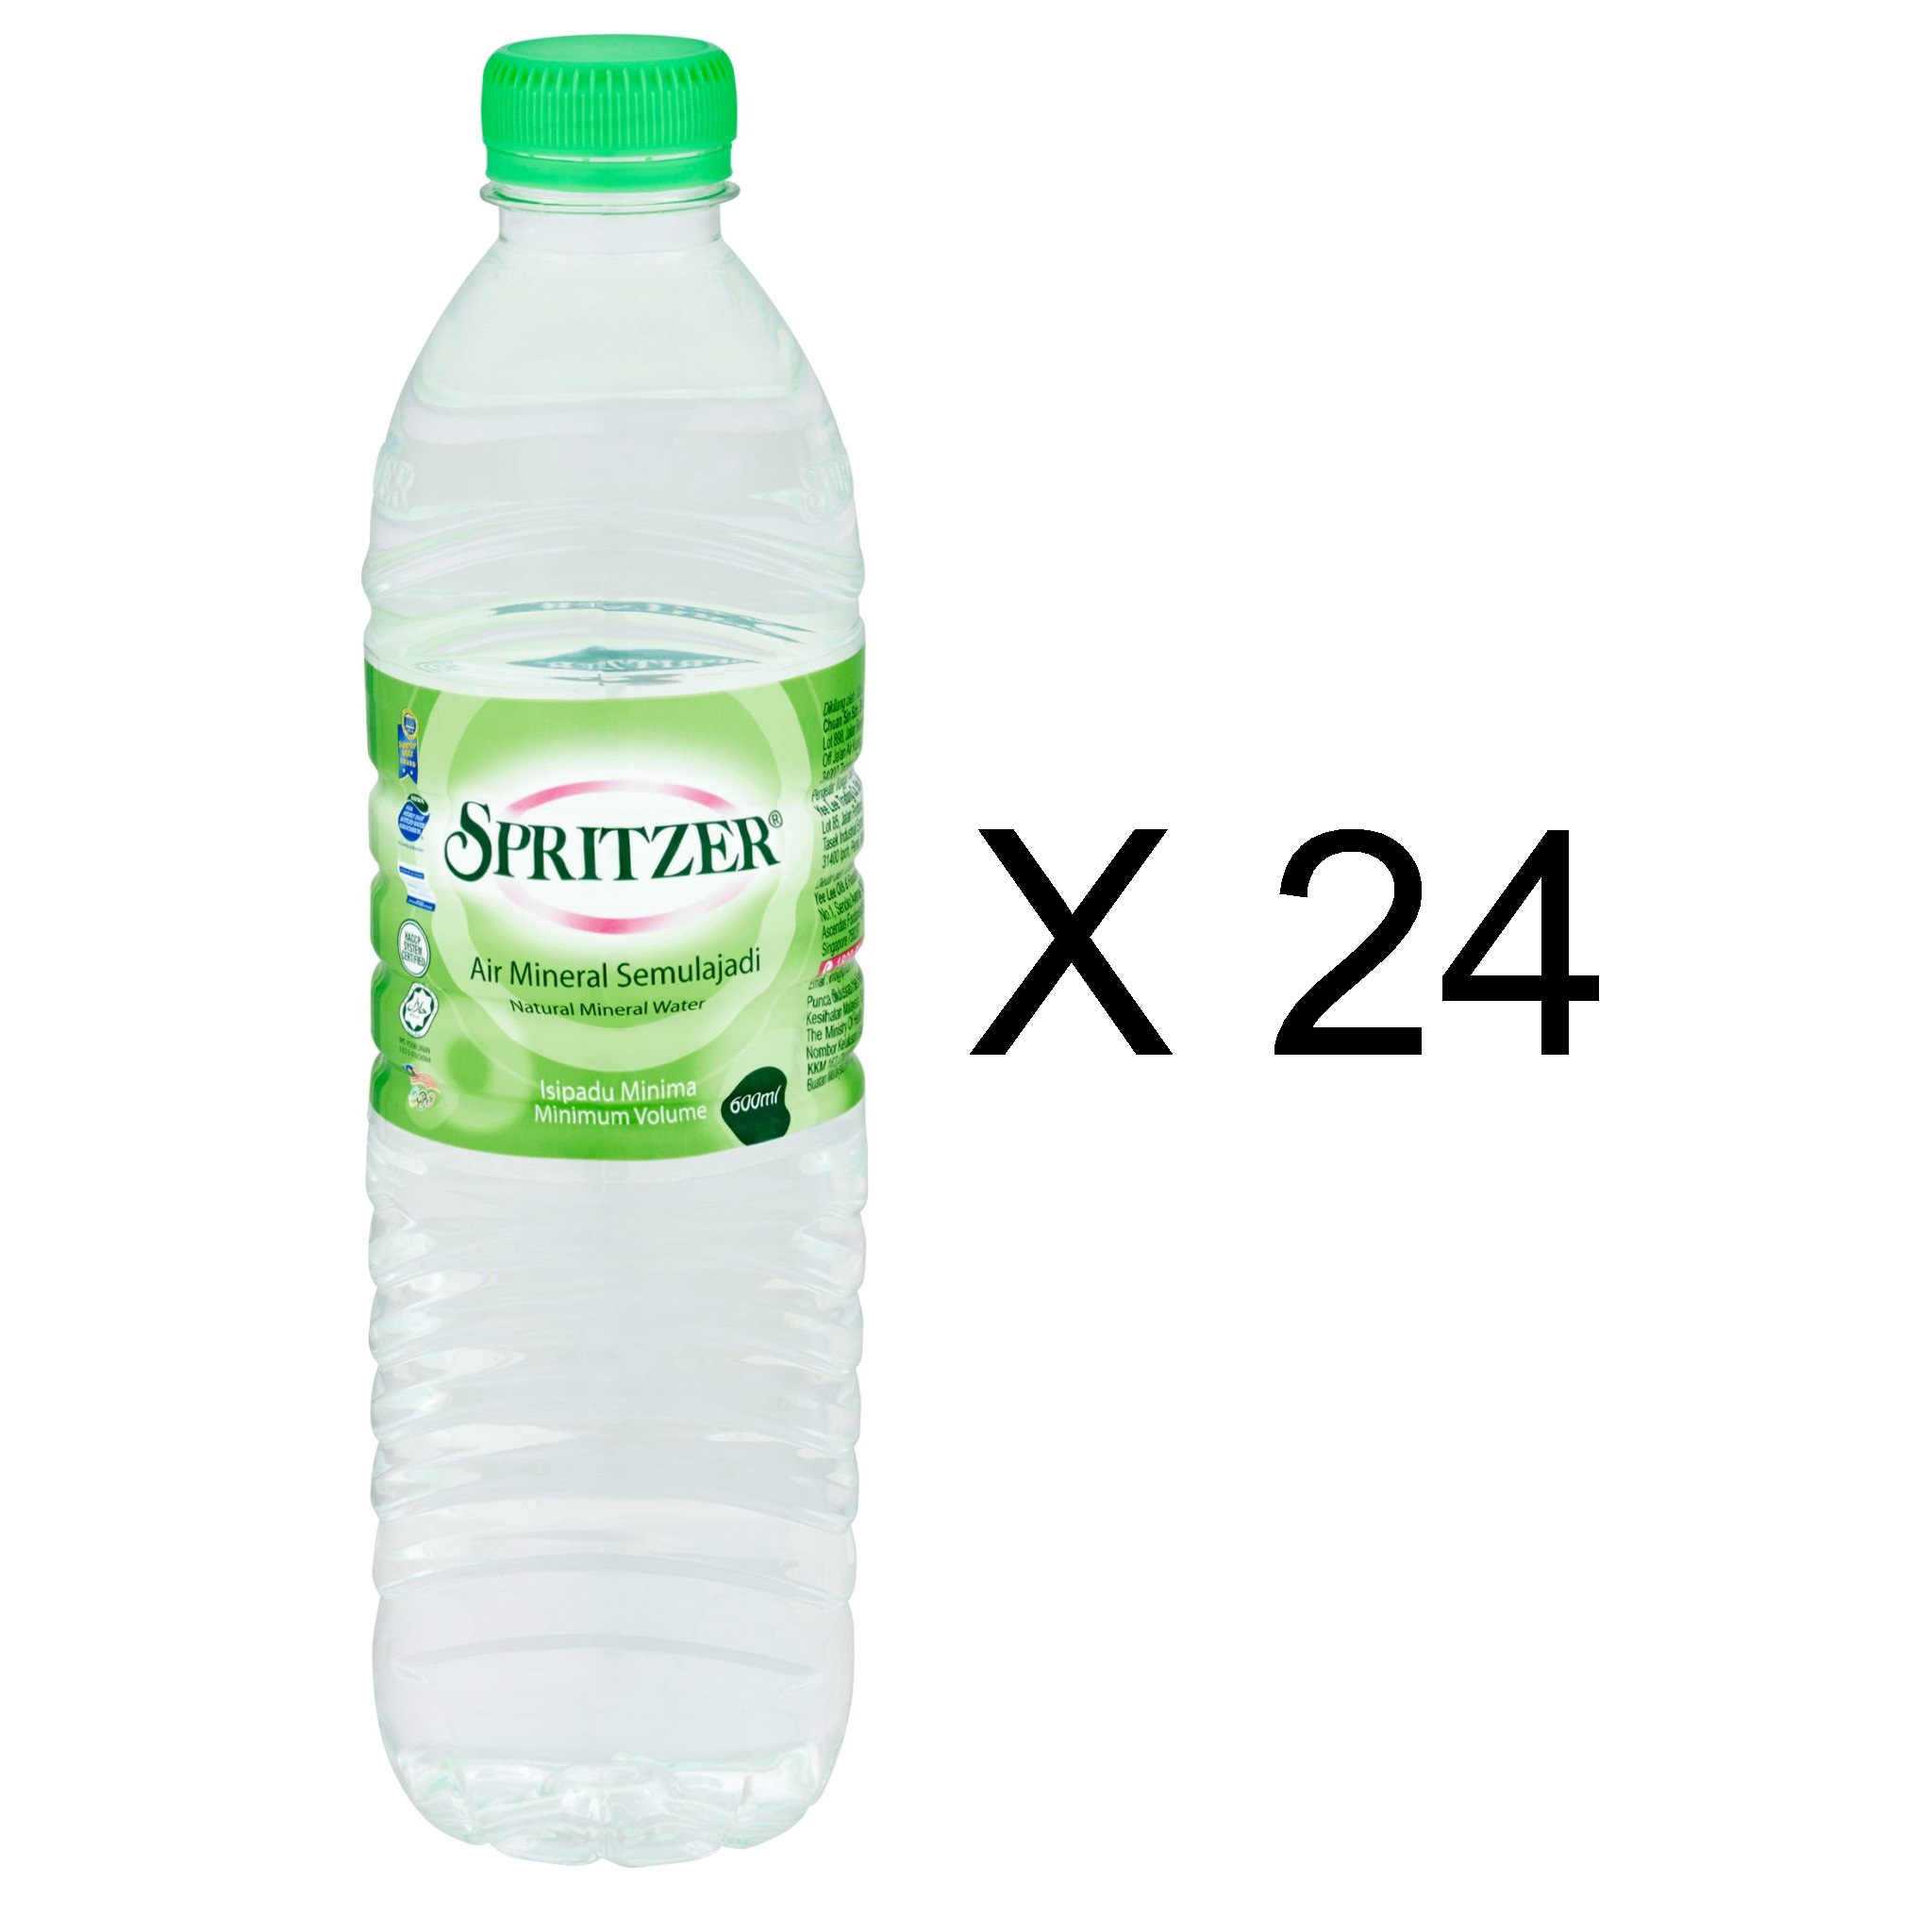 Spritzer Natural Mineral Water (24 x 600ml)